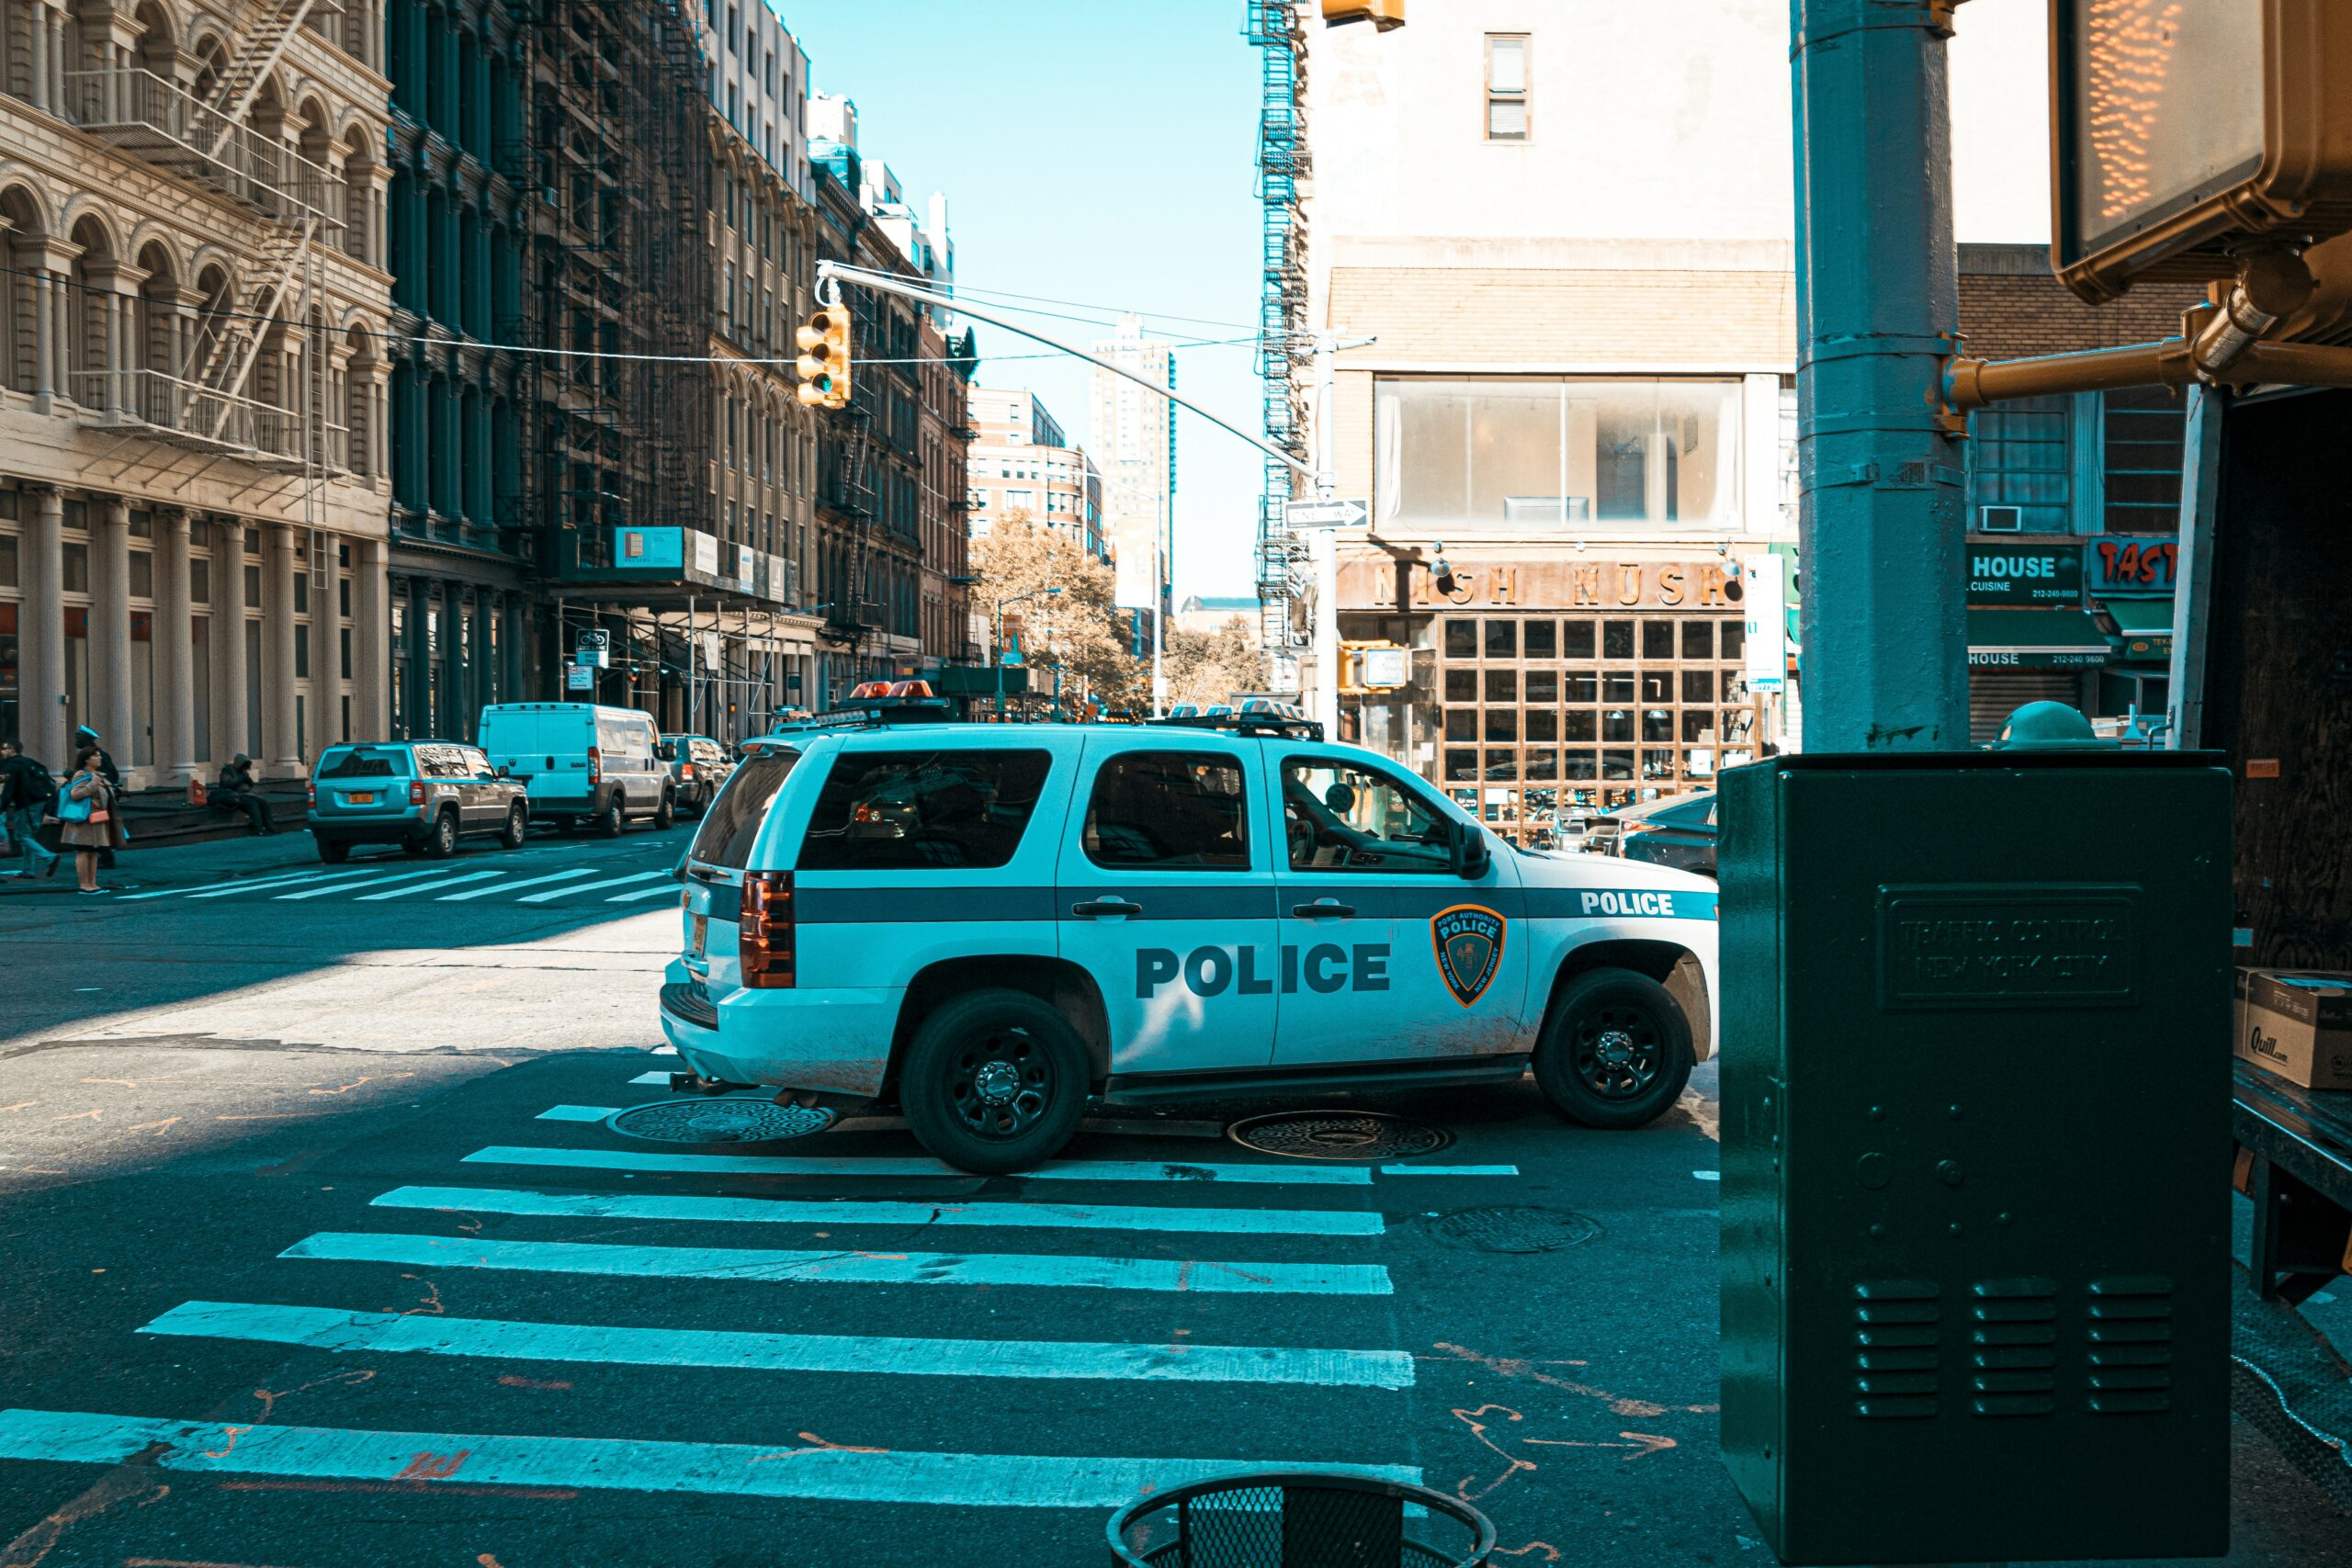 A police car parked haphazardly on top of a pedestrian crossing.